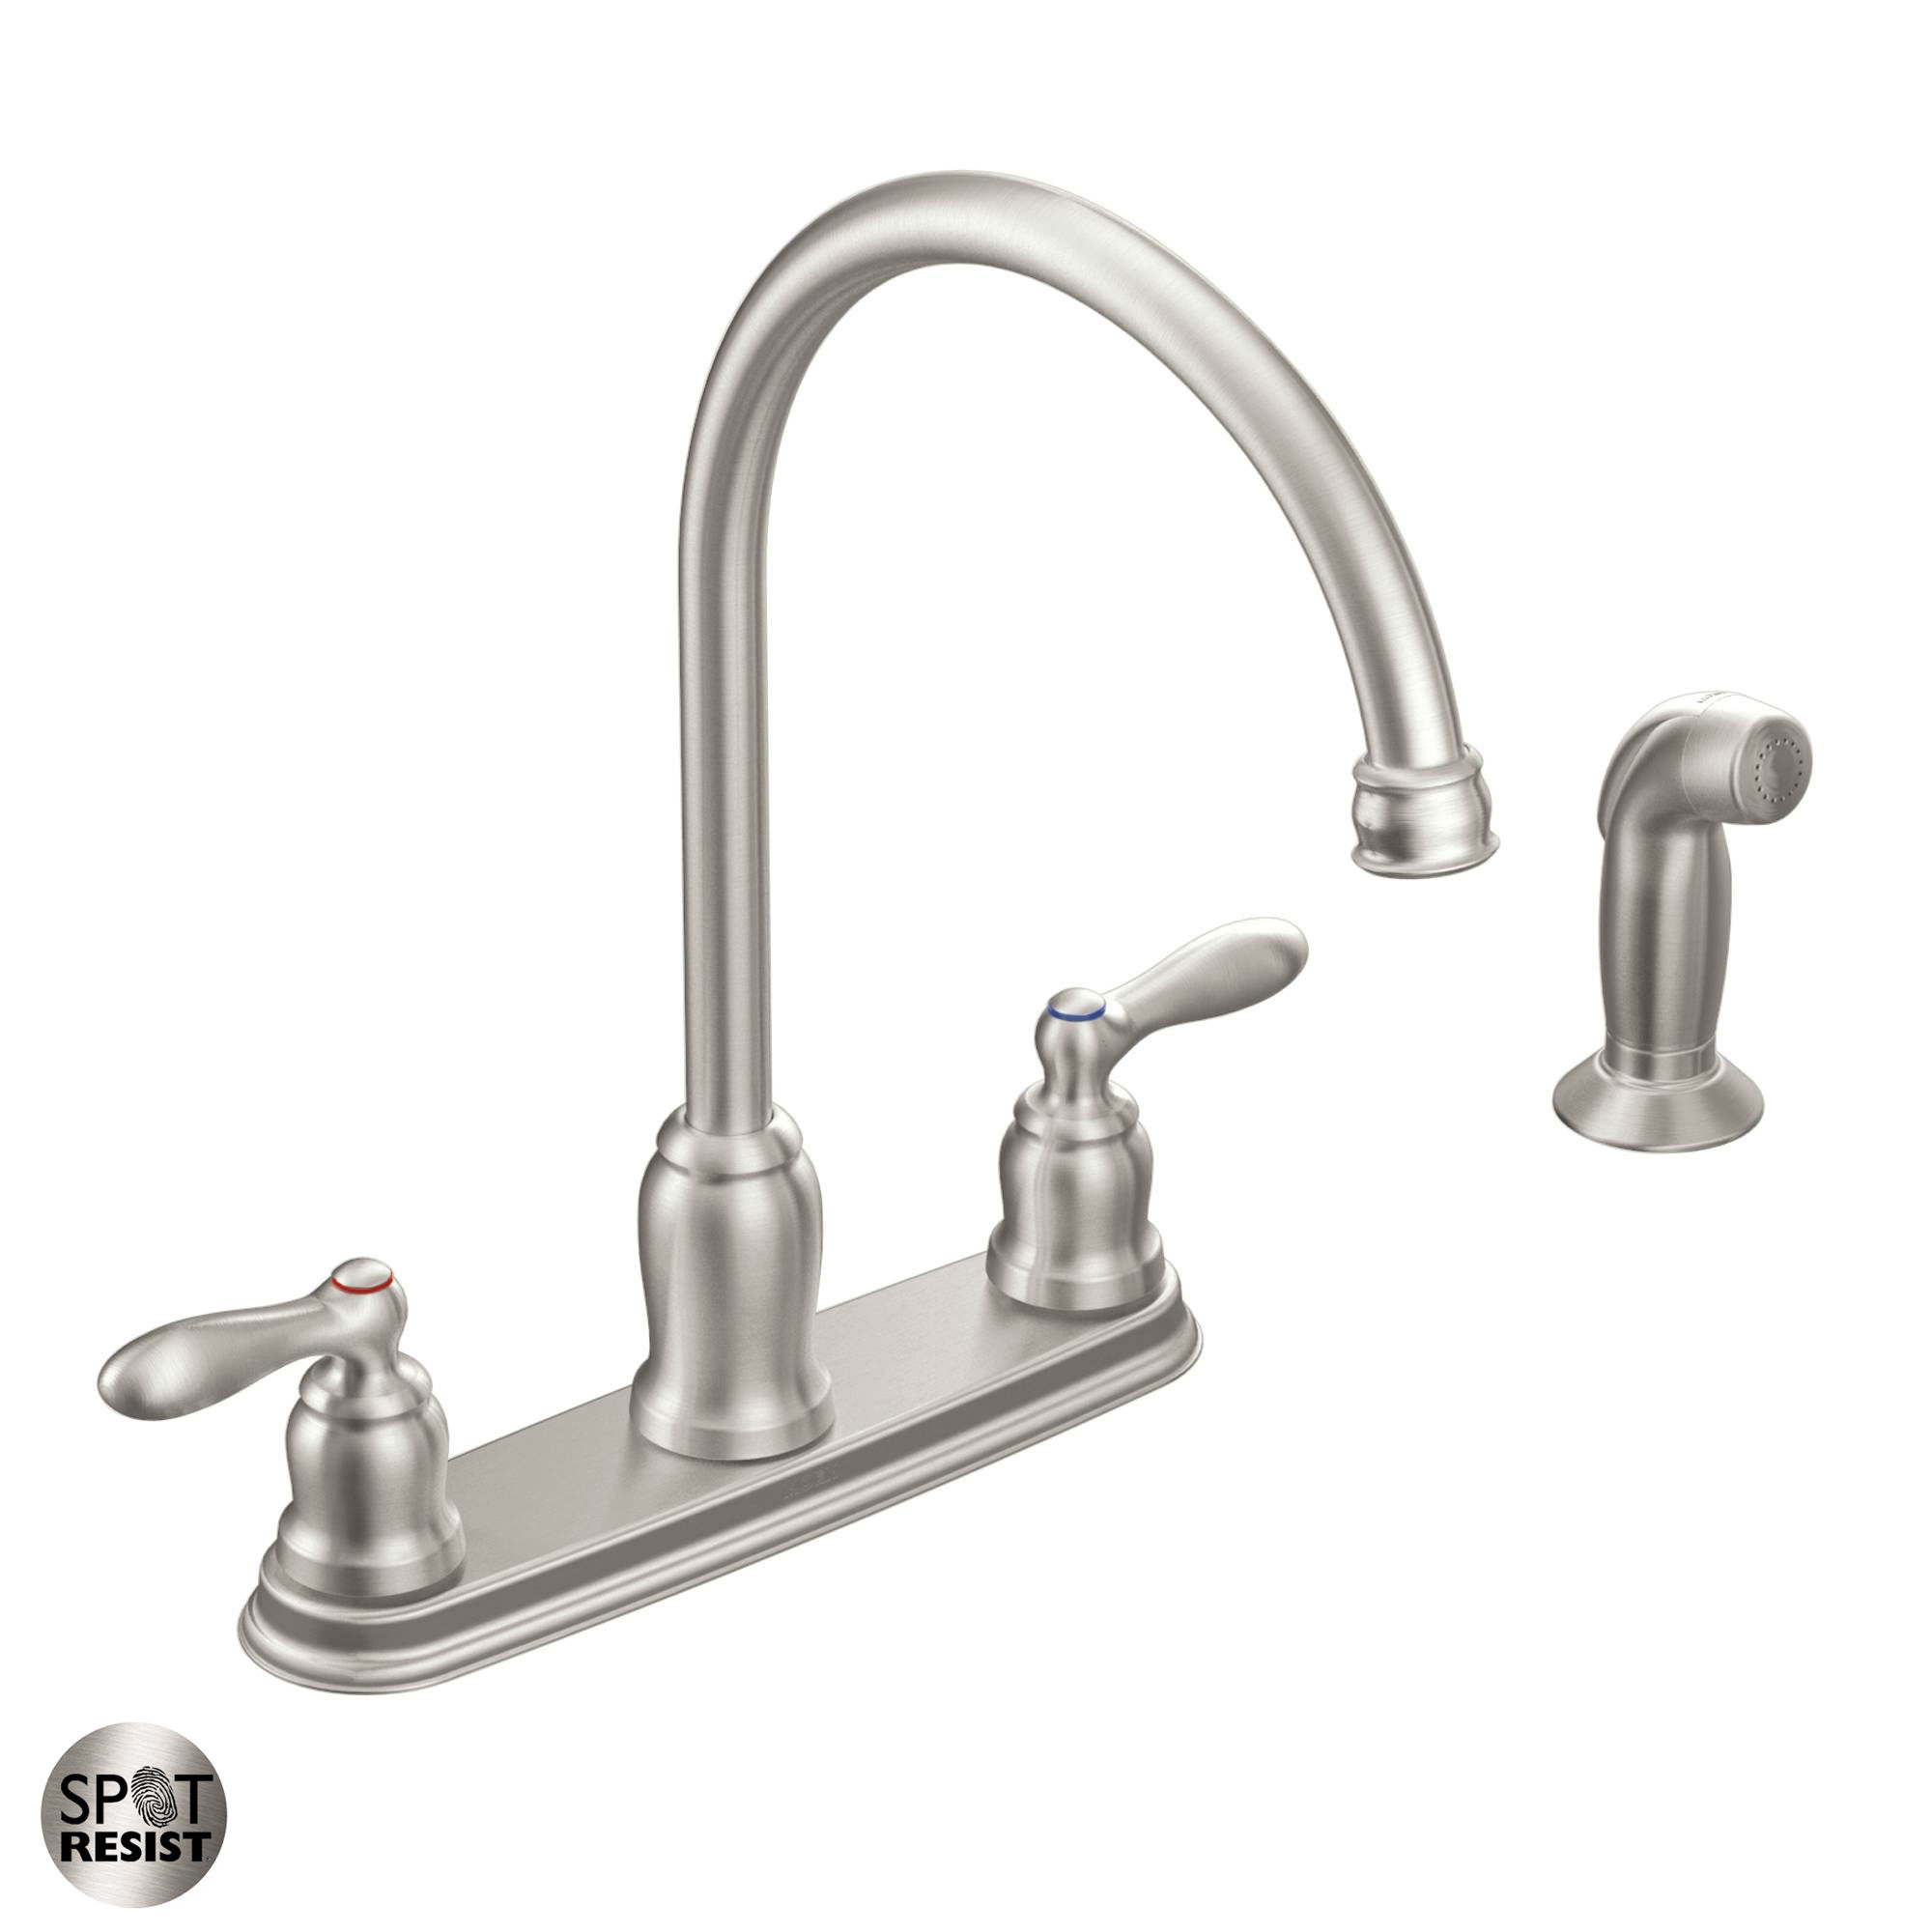 Moen ca87060srs spot resist stainless high arc kitchen faucet with side spray from the caldwell collection faucet com